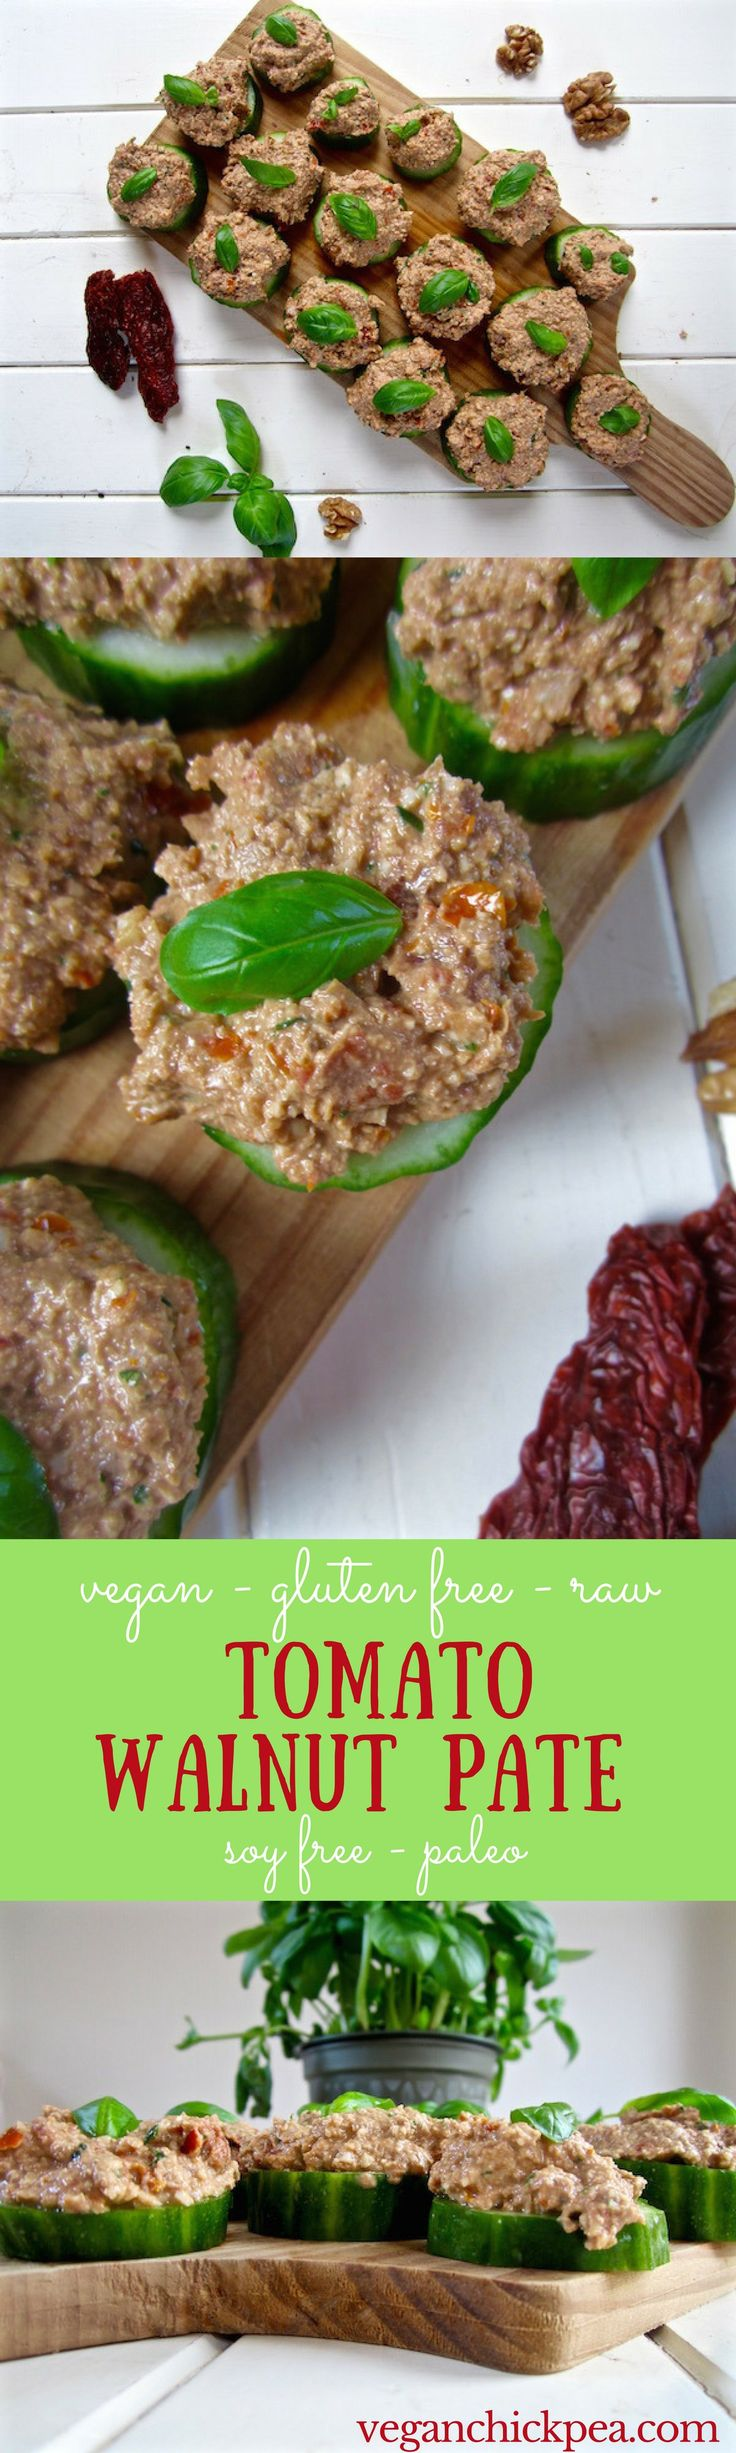 Tomato Walnut Pate recipe - an easy vegan appetizer, especially in the summer! Serve on cucumbers or crackers. {raw, paleo, soy & gluten free} | veganchickpea.com